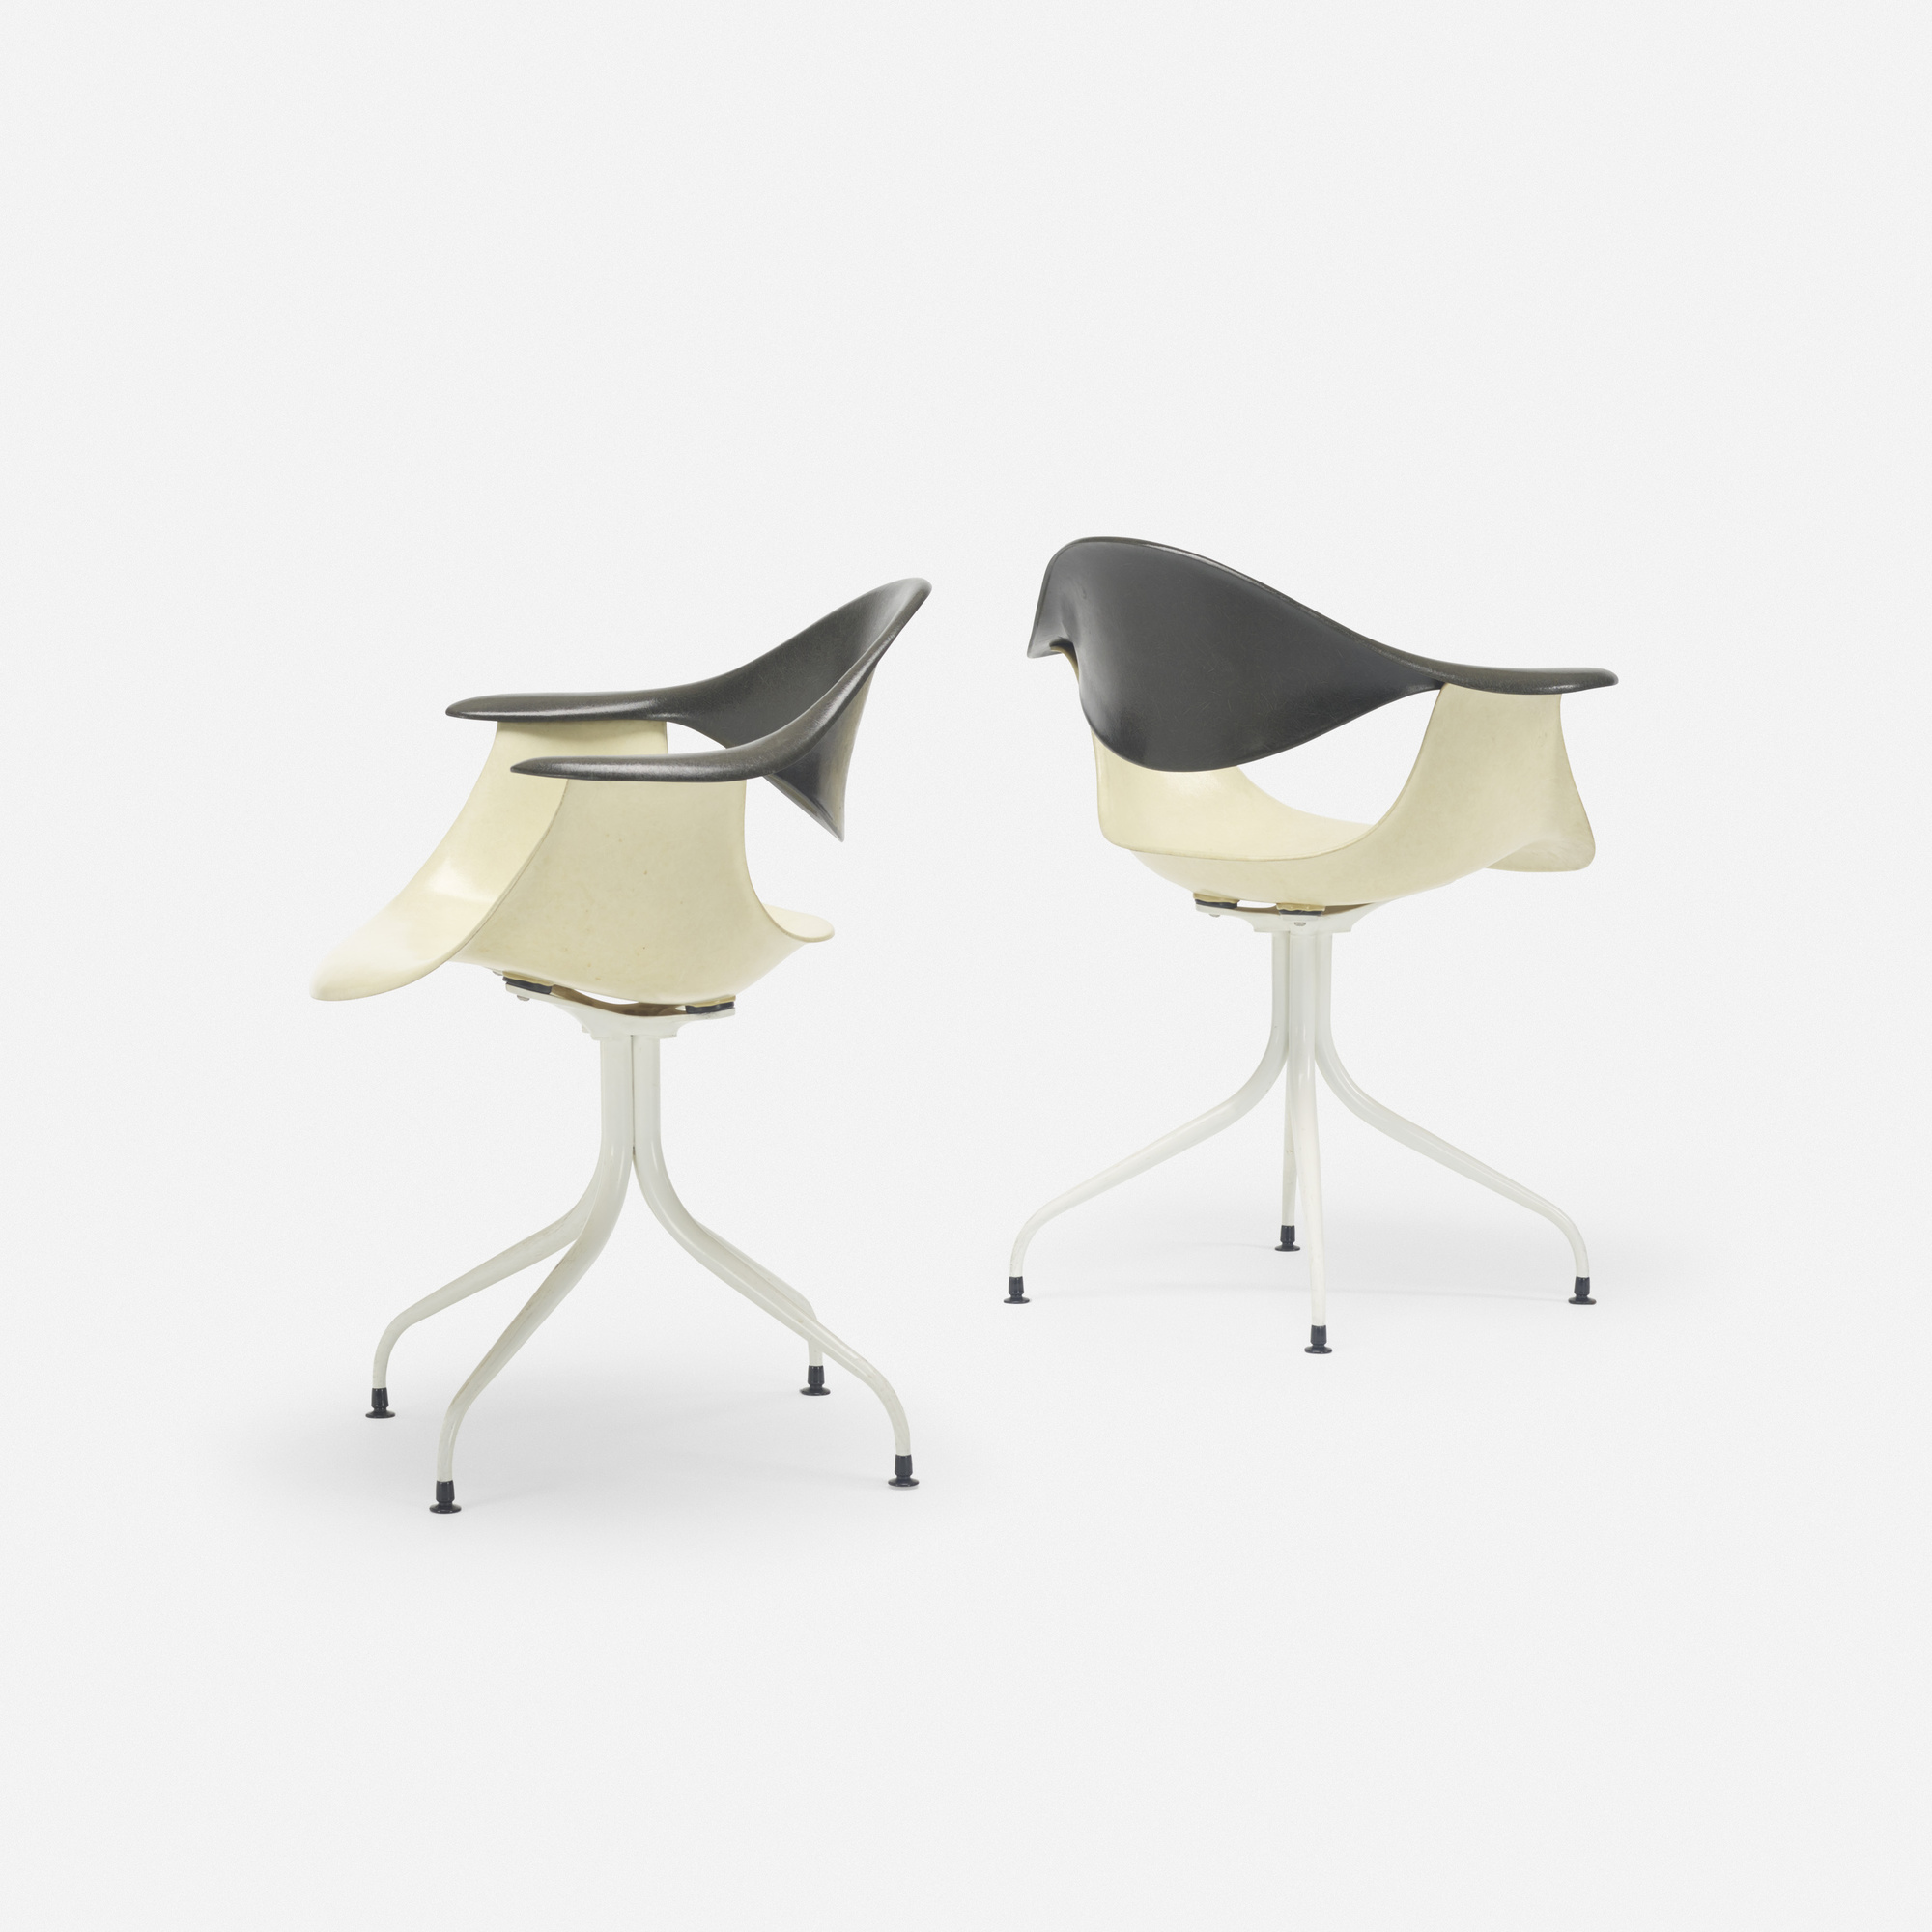 416: George Nelson & Associates / Swaged Leg chairs model MAF, pair (1 of 3)